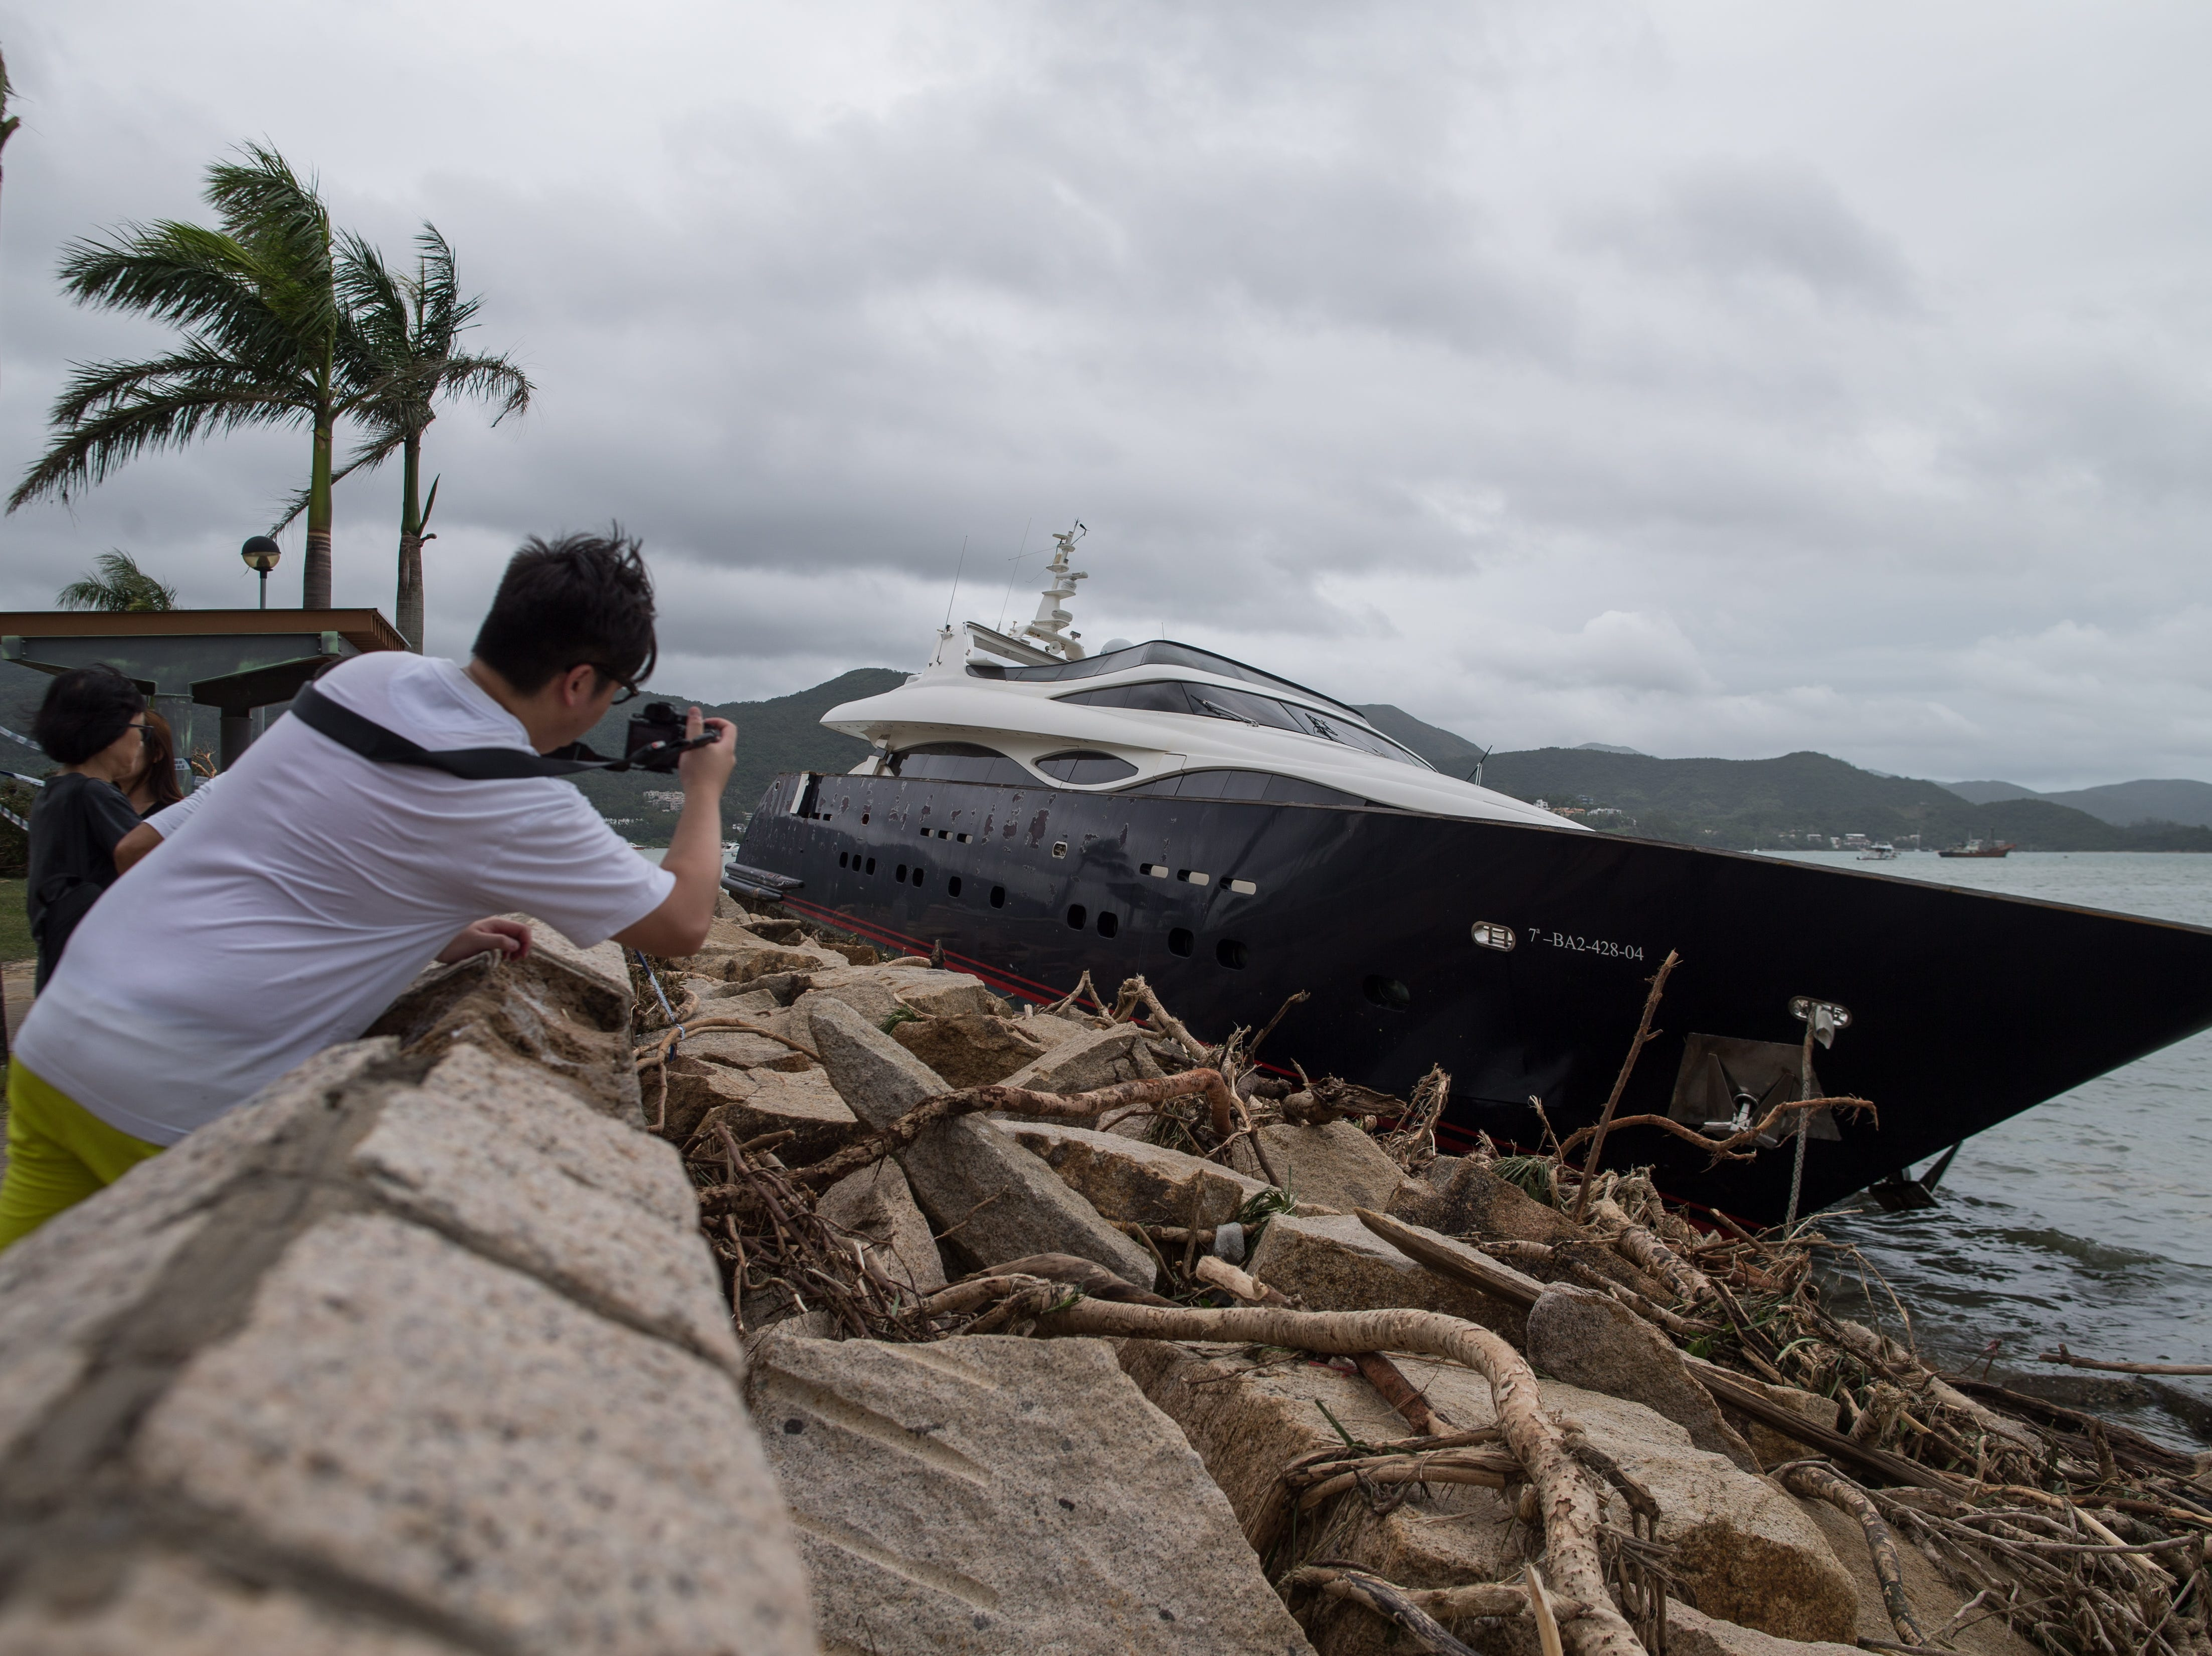 A boat sits on a sea wall after being hit by Typhoon Mangkhut in Saikung, Hong Kong, China on Sept. 17, 2018. Typhoon Mangkhut was one of the most severe storms to hit Hong Kong in recent decades.